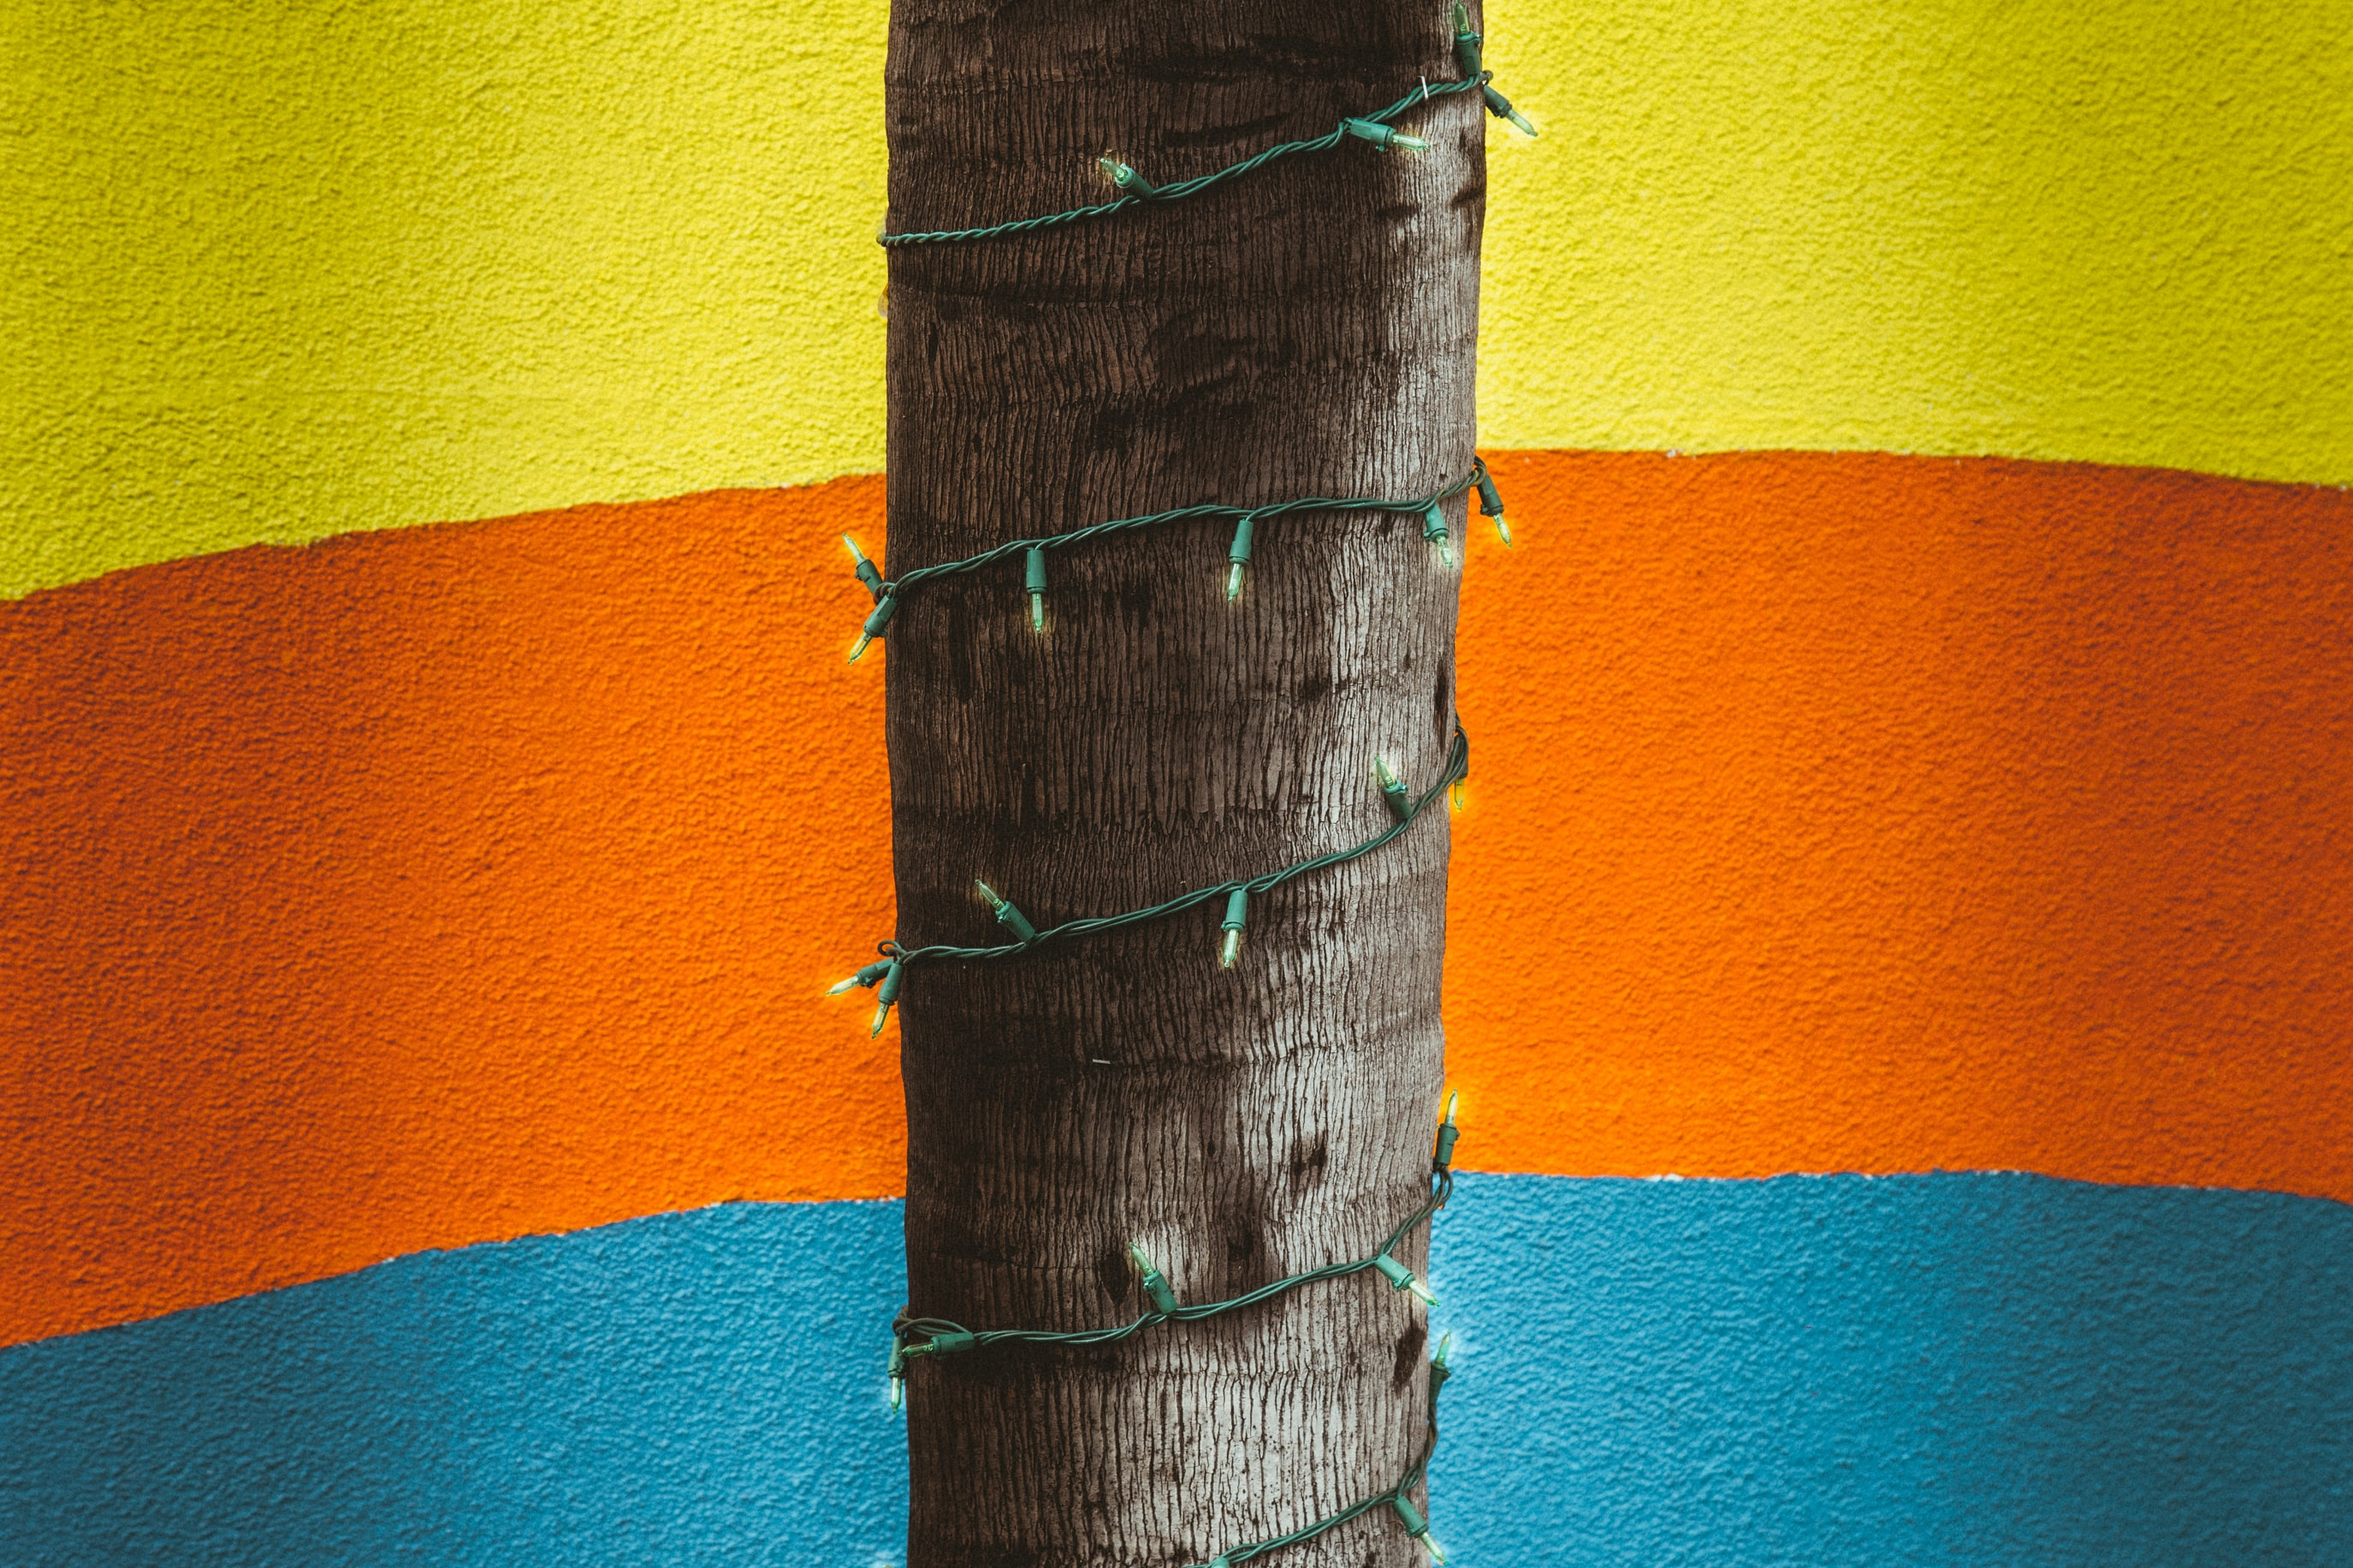 Christmas lights wrapped around a tree trunk against a blue, yellow, and orange wall